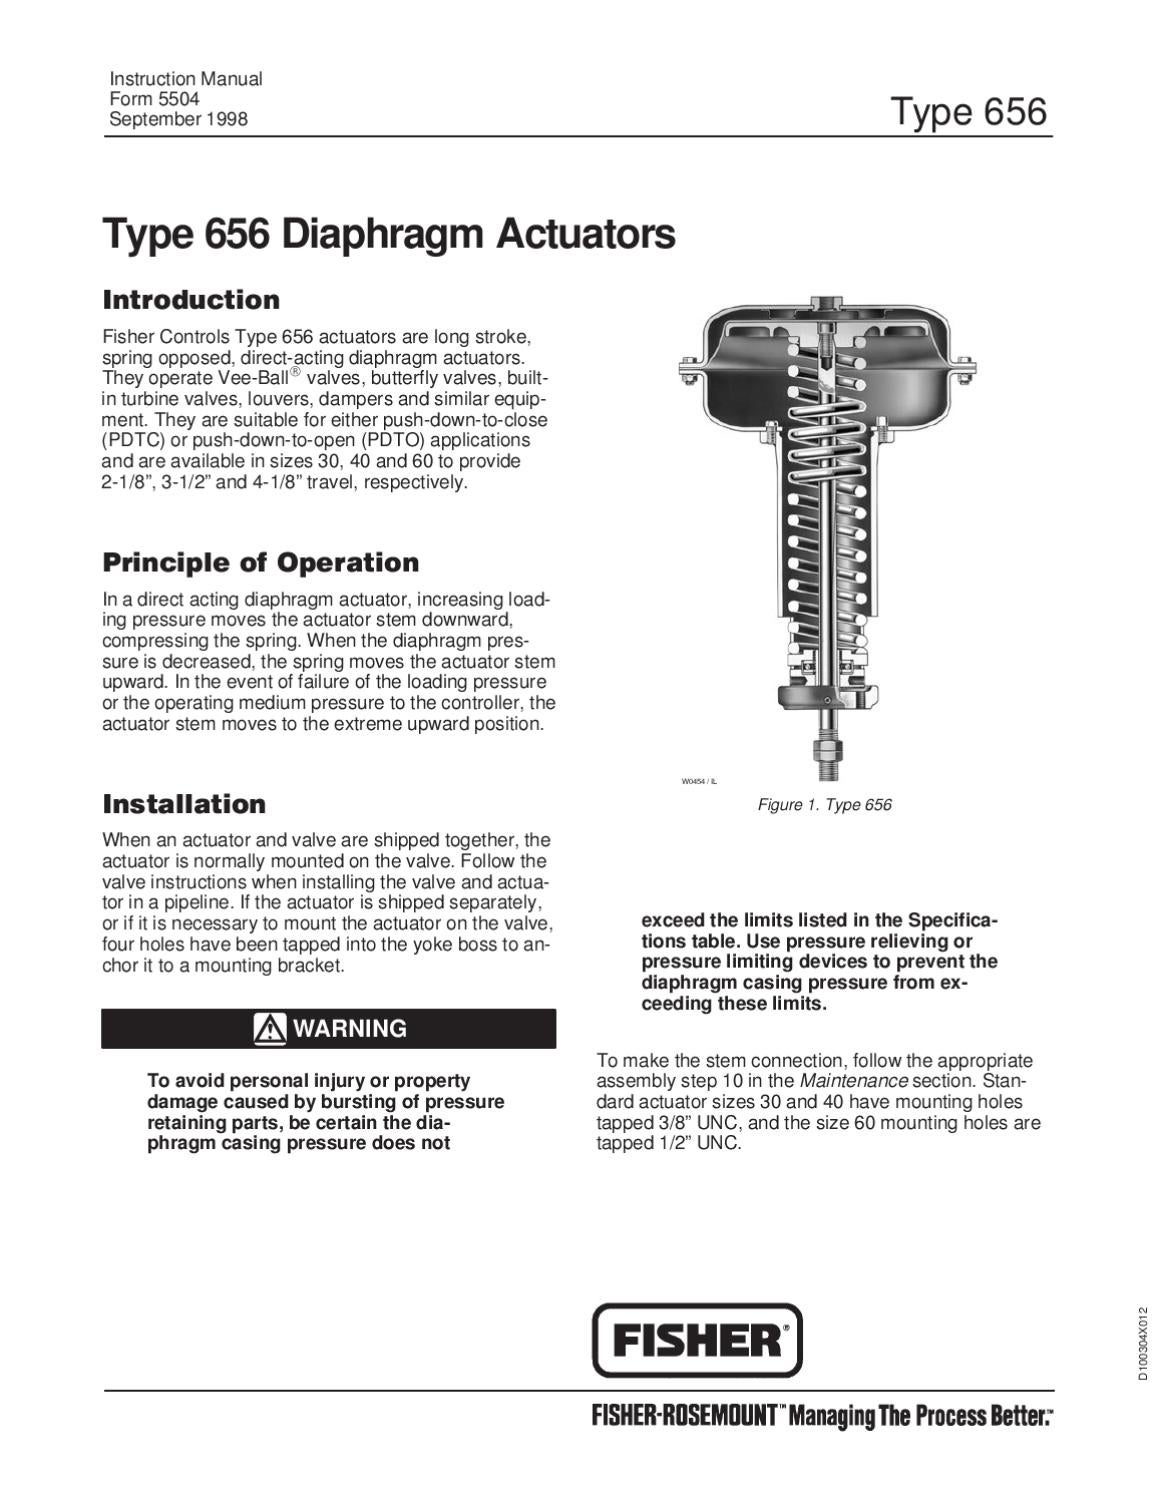 656 Actuator Instruction Manual by RMC Process Controls & Filtration, Inc. - Issuu